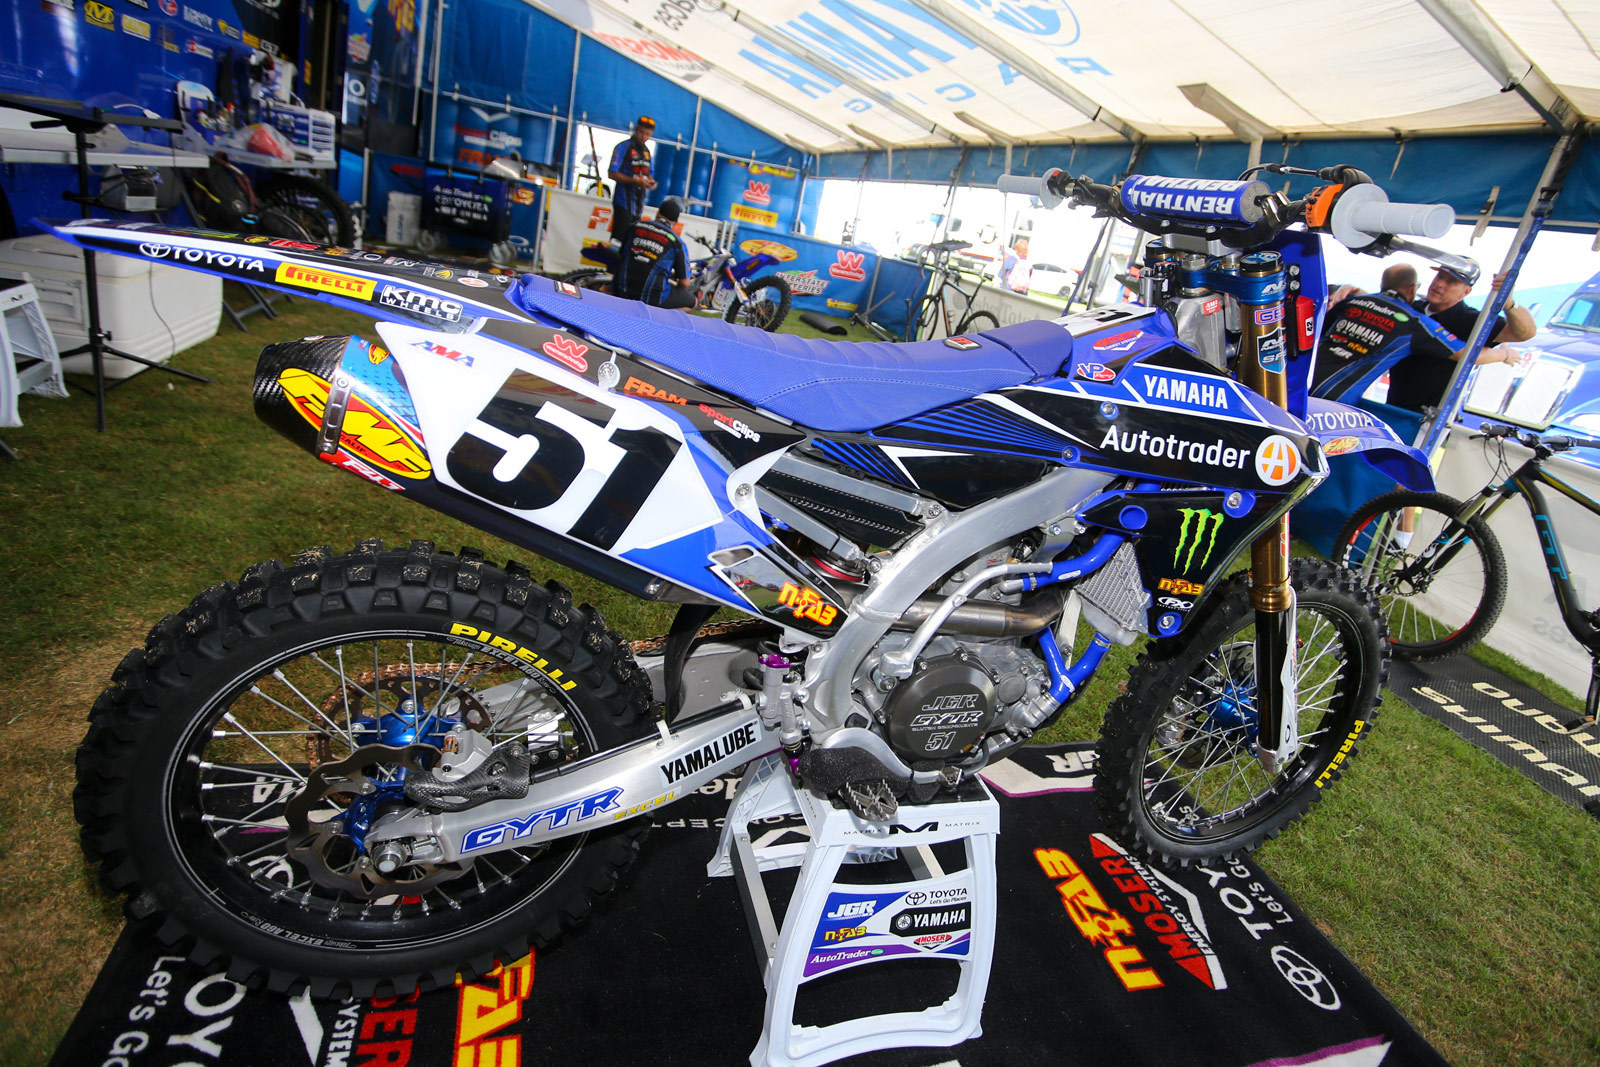 AutoTrader.com/Toyota/Yamaha - Vital MX Pit Bits: Monster Energy Cup - Motocross Pictures - Vital MX